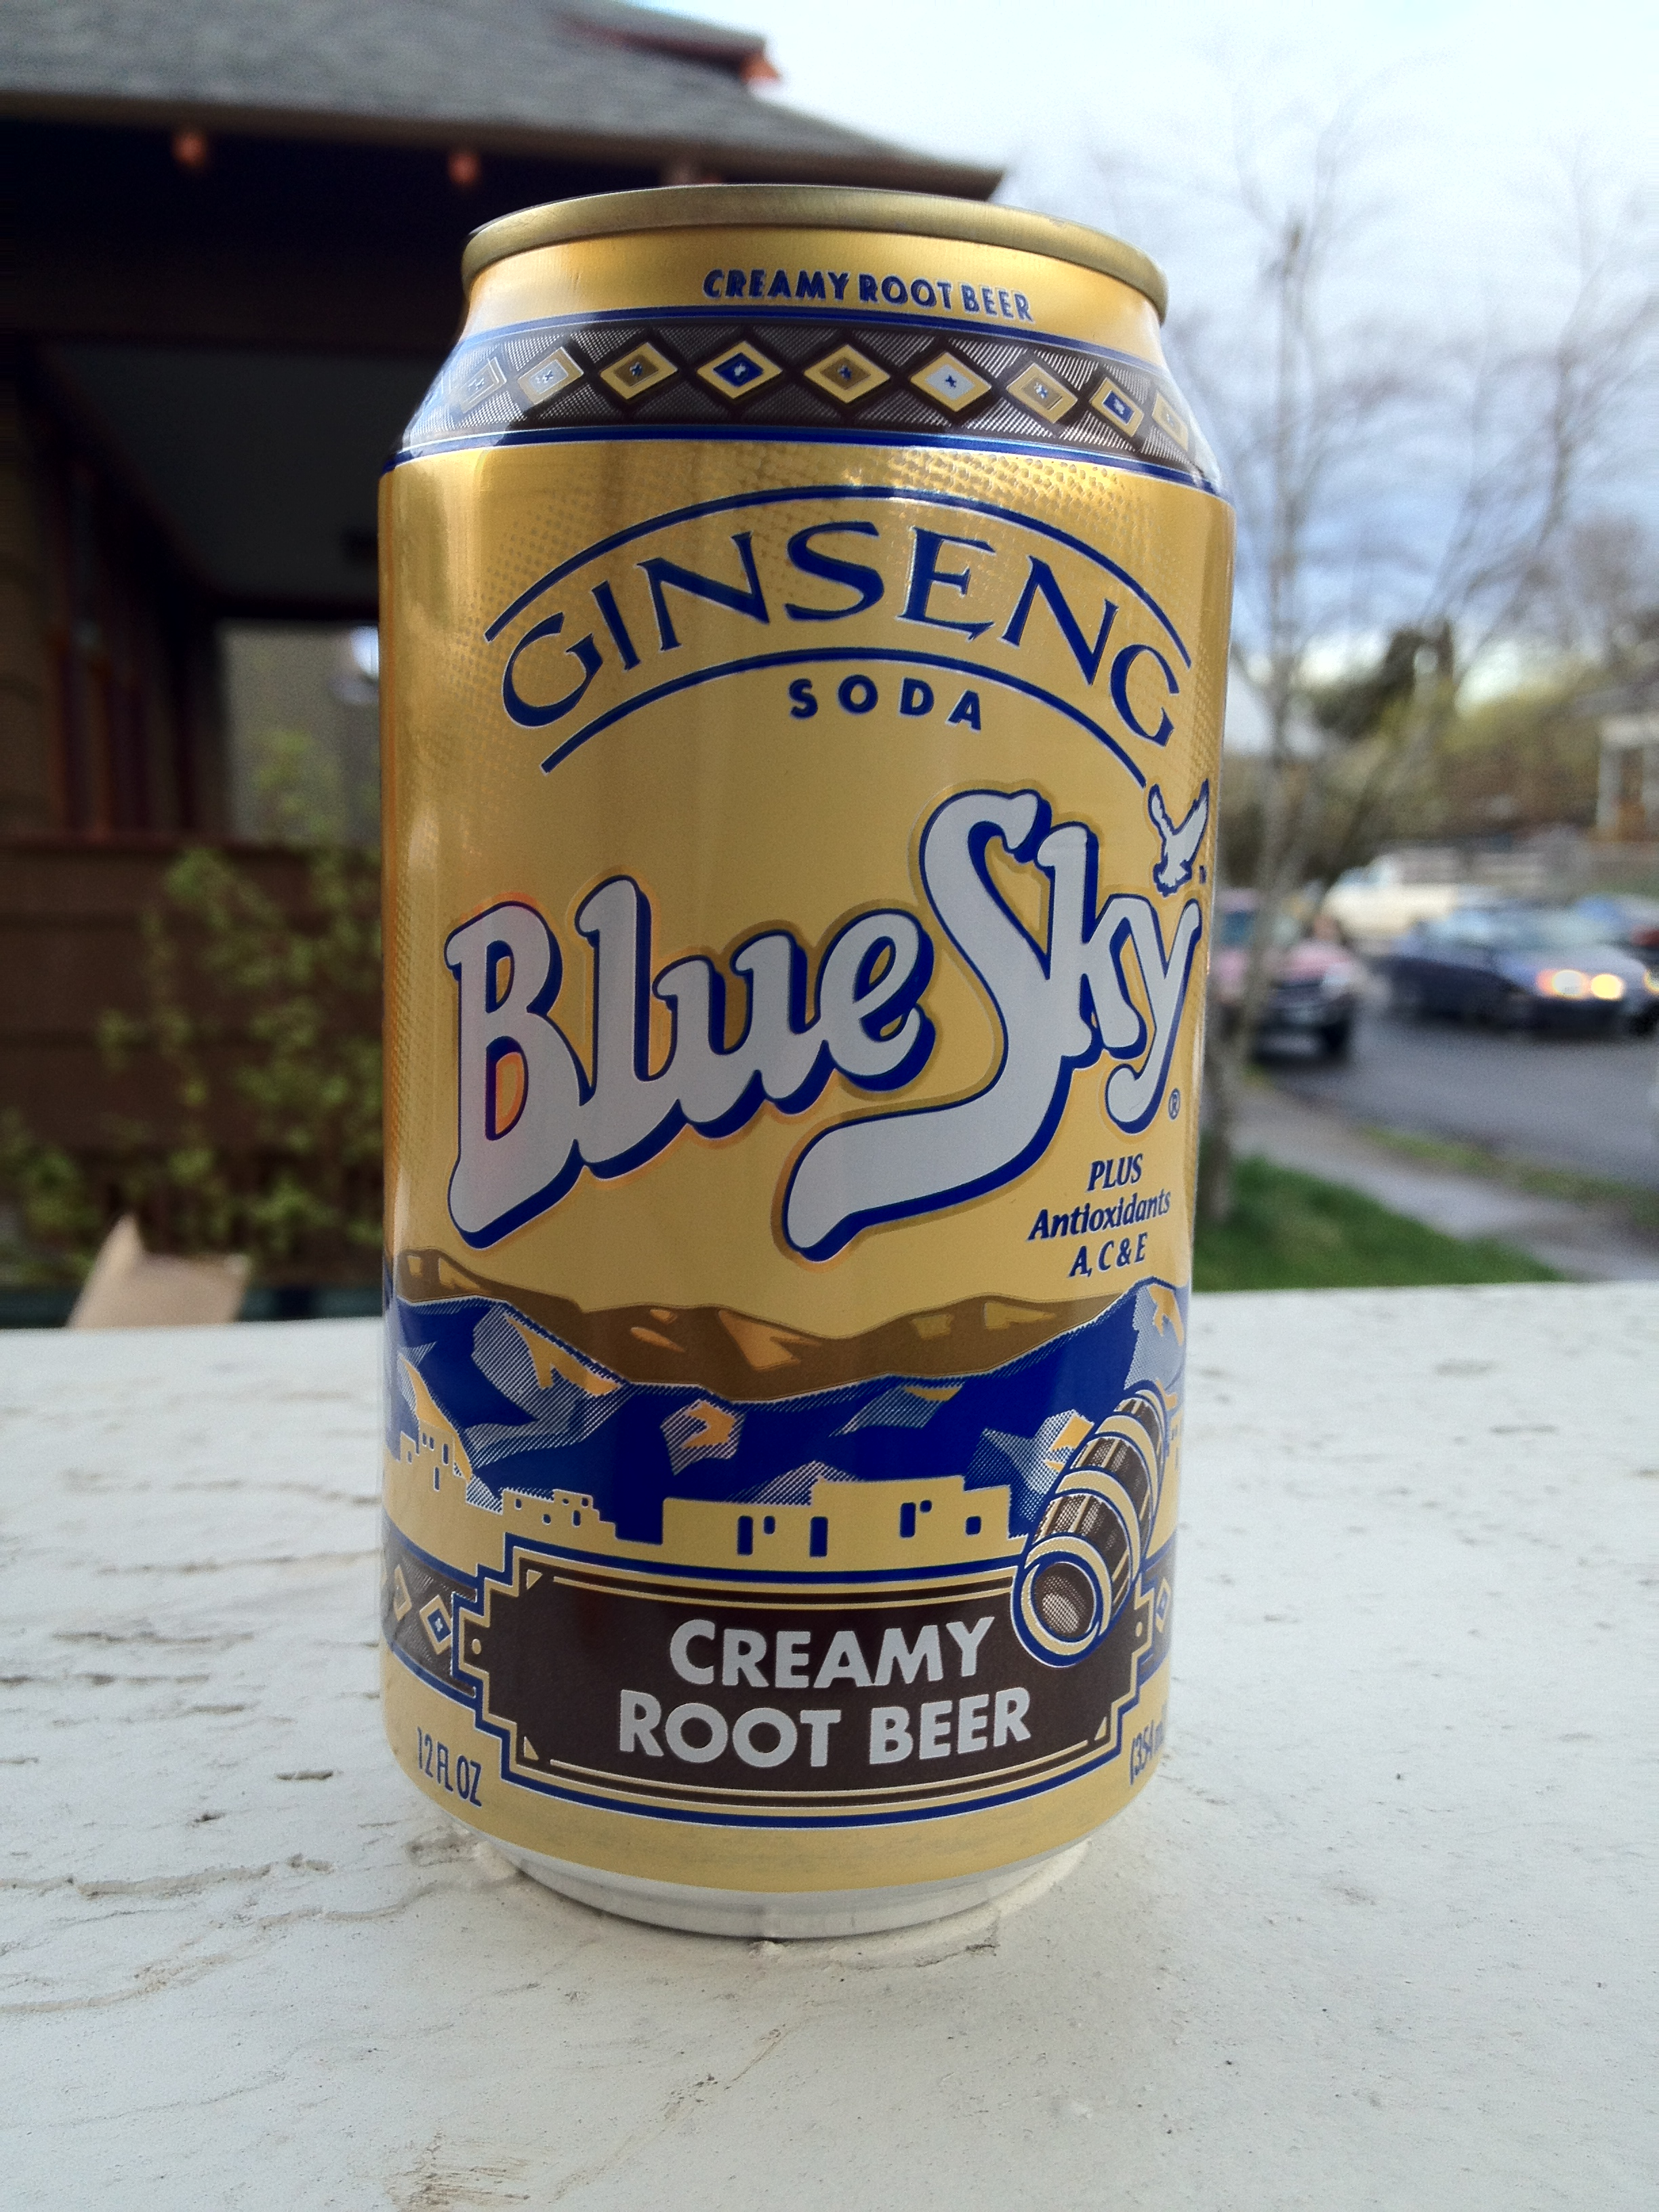 how to make ginseng root drink